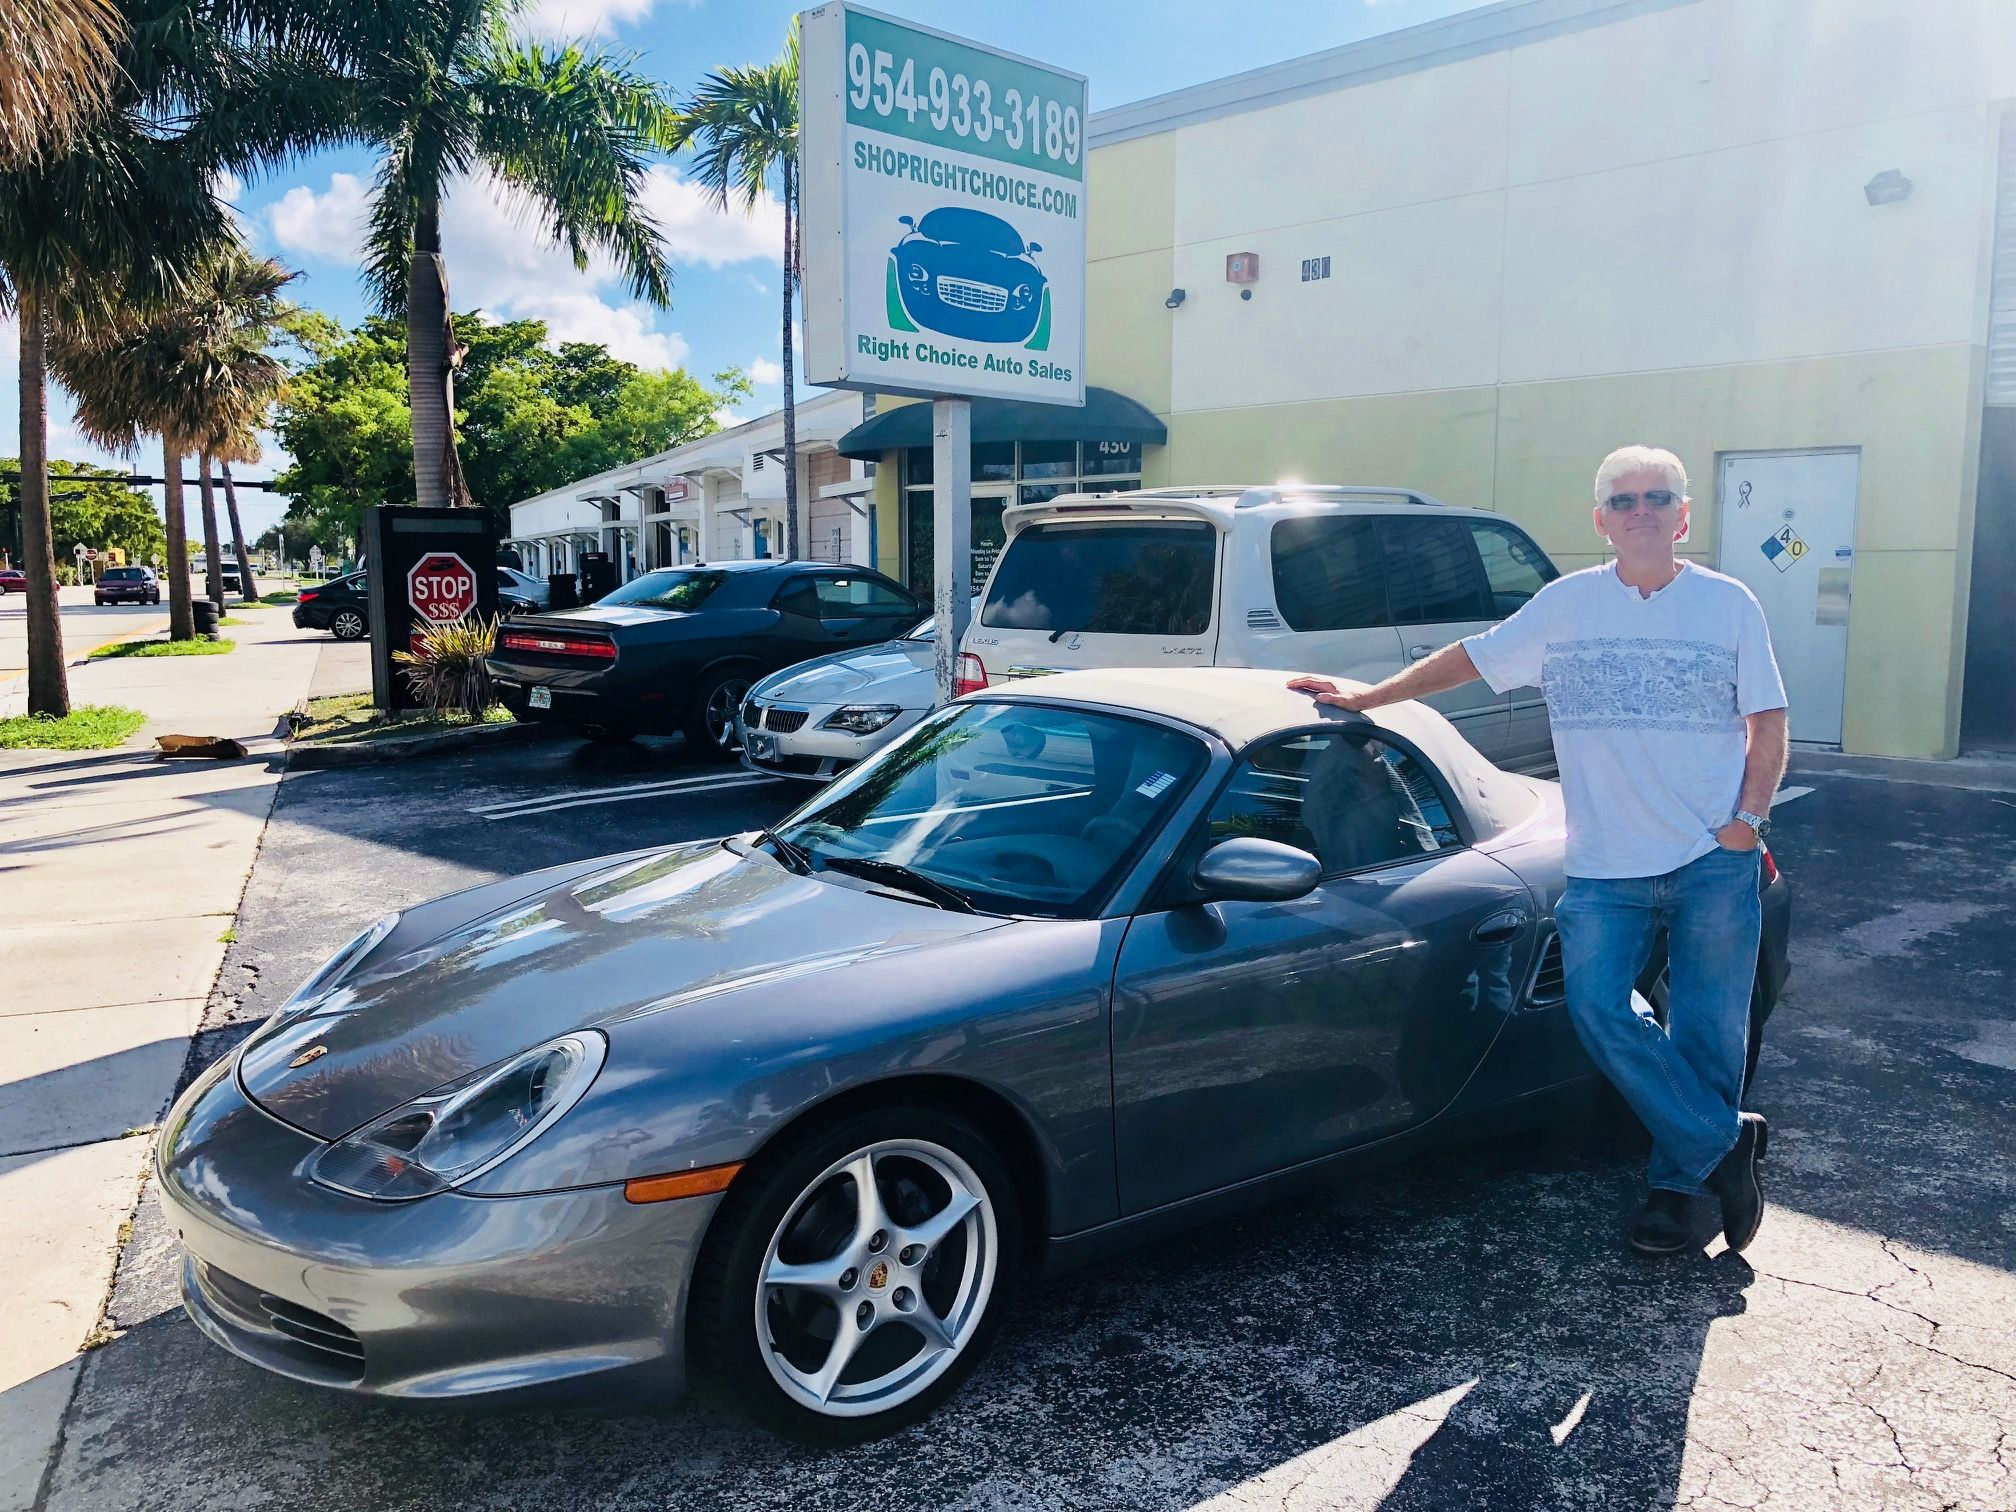 Another Happy Customer Who Bought The Right Car At The Right Price Tom Took Home This Like New 2003 Porsche Boxster Cars For Sale Pompano Beach Porsche Club